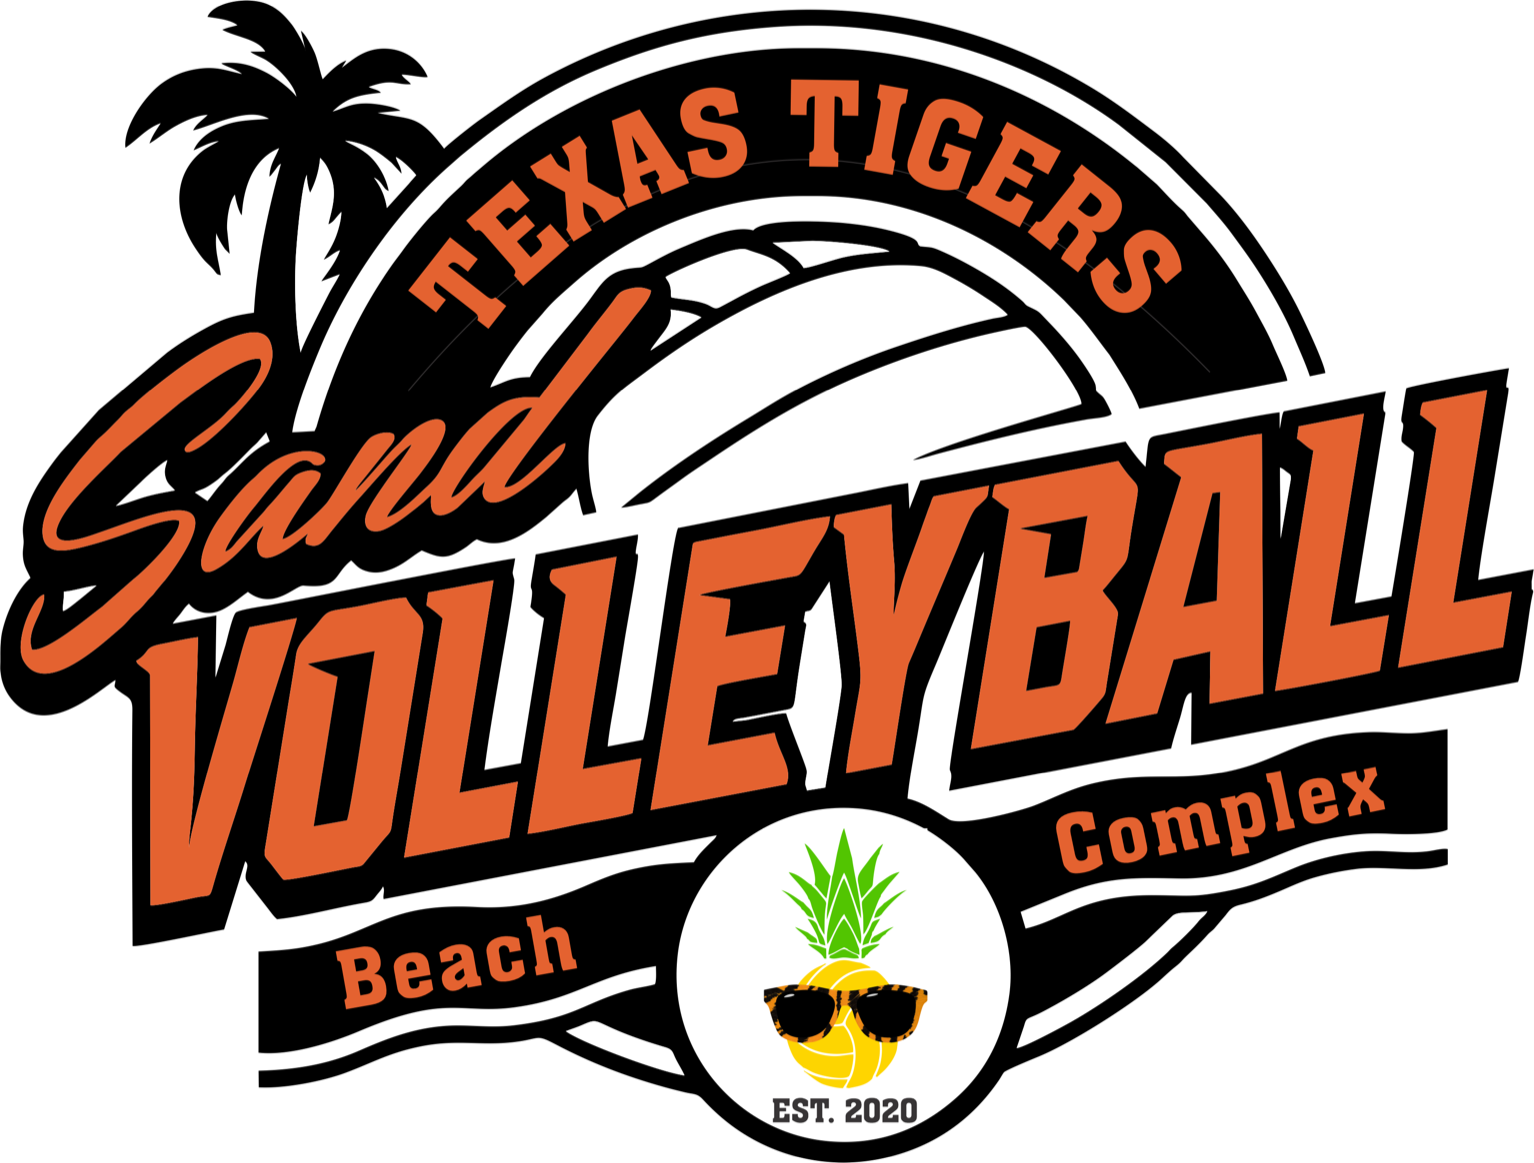 Texas Tigers Beach Complex